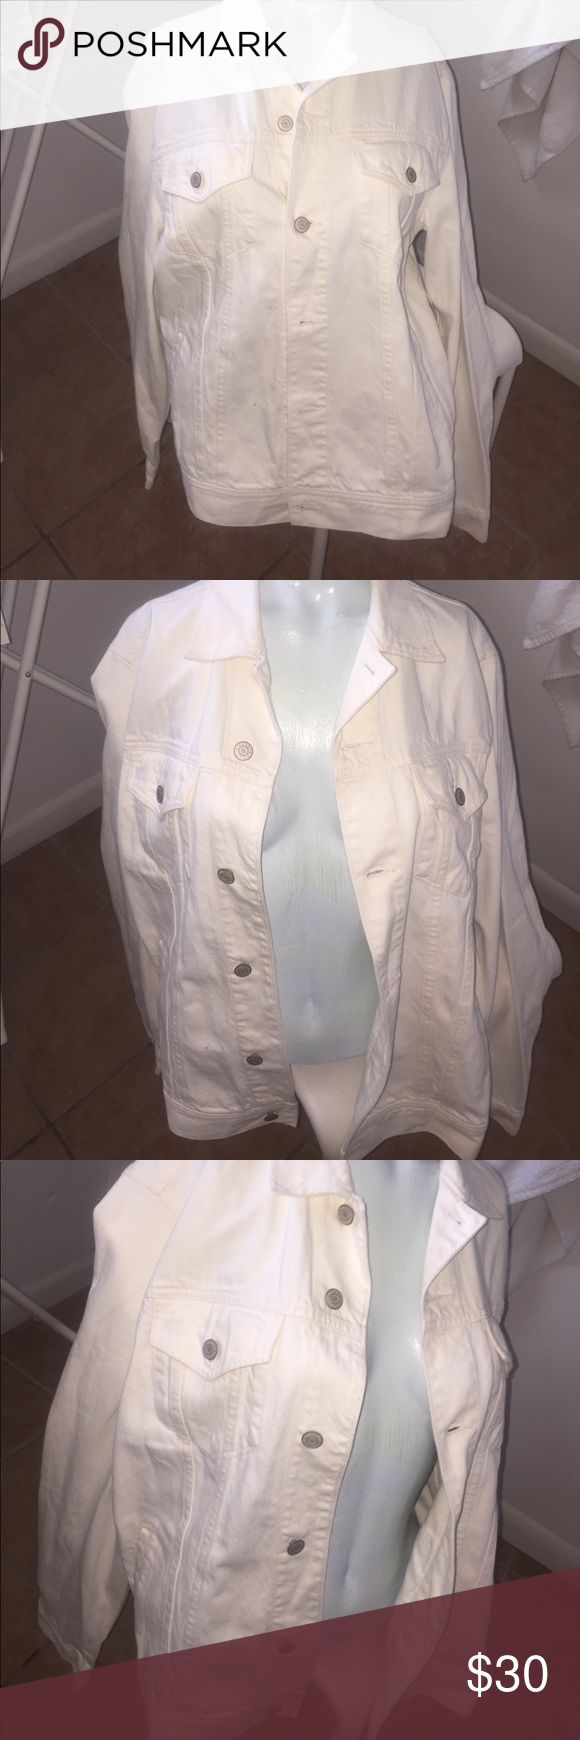 Classic men's Jean Jacket White Jean button up jacket brand new with tags Jackets & Coats